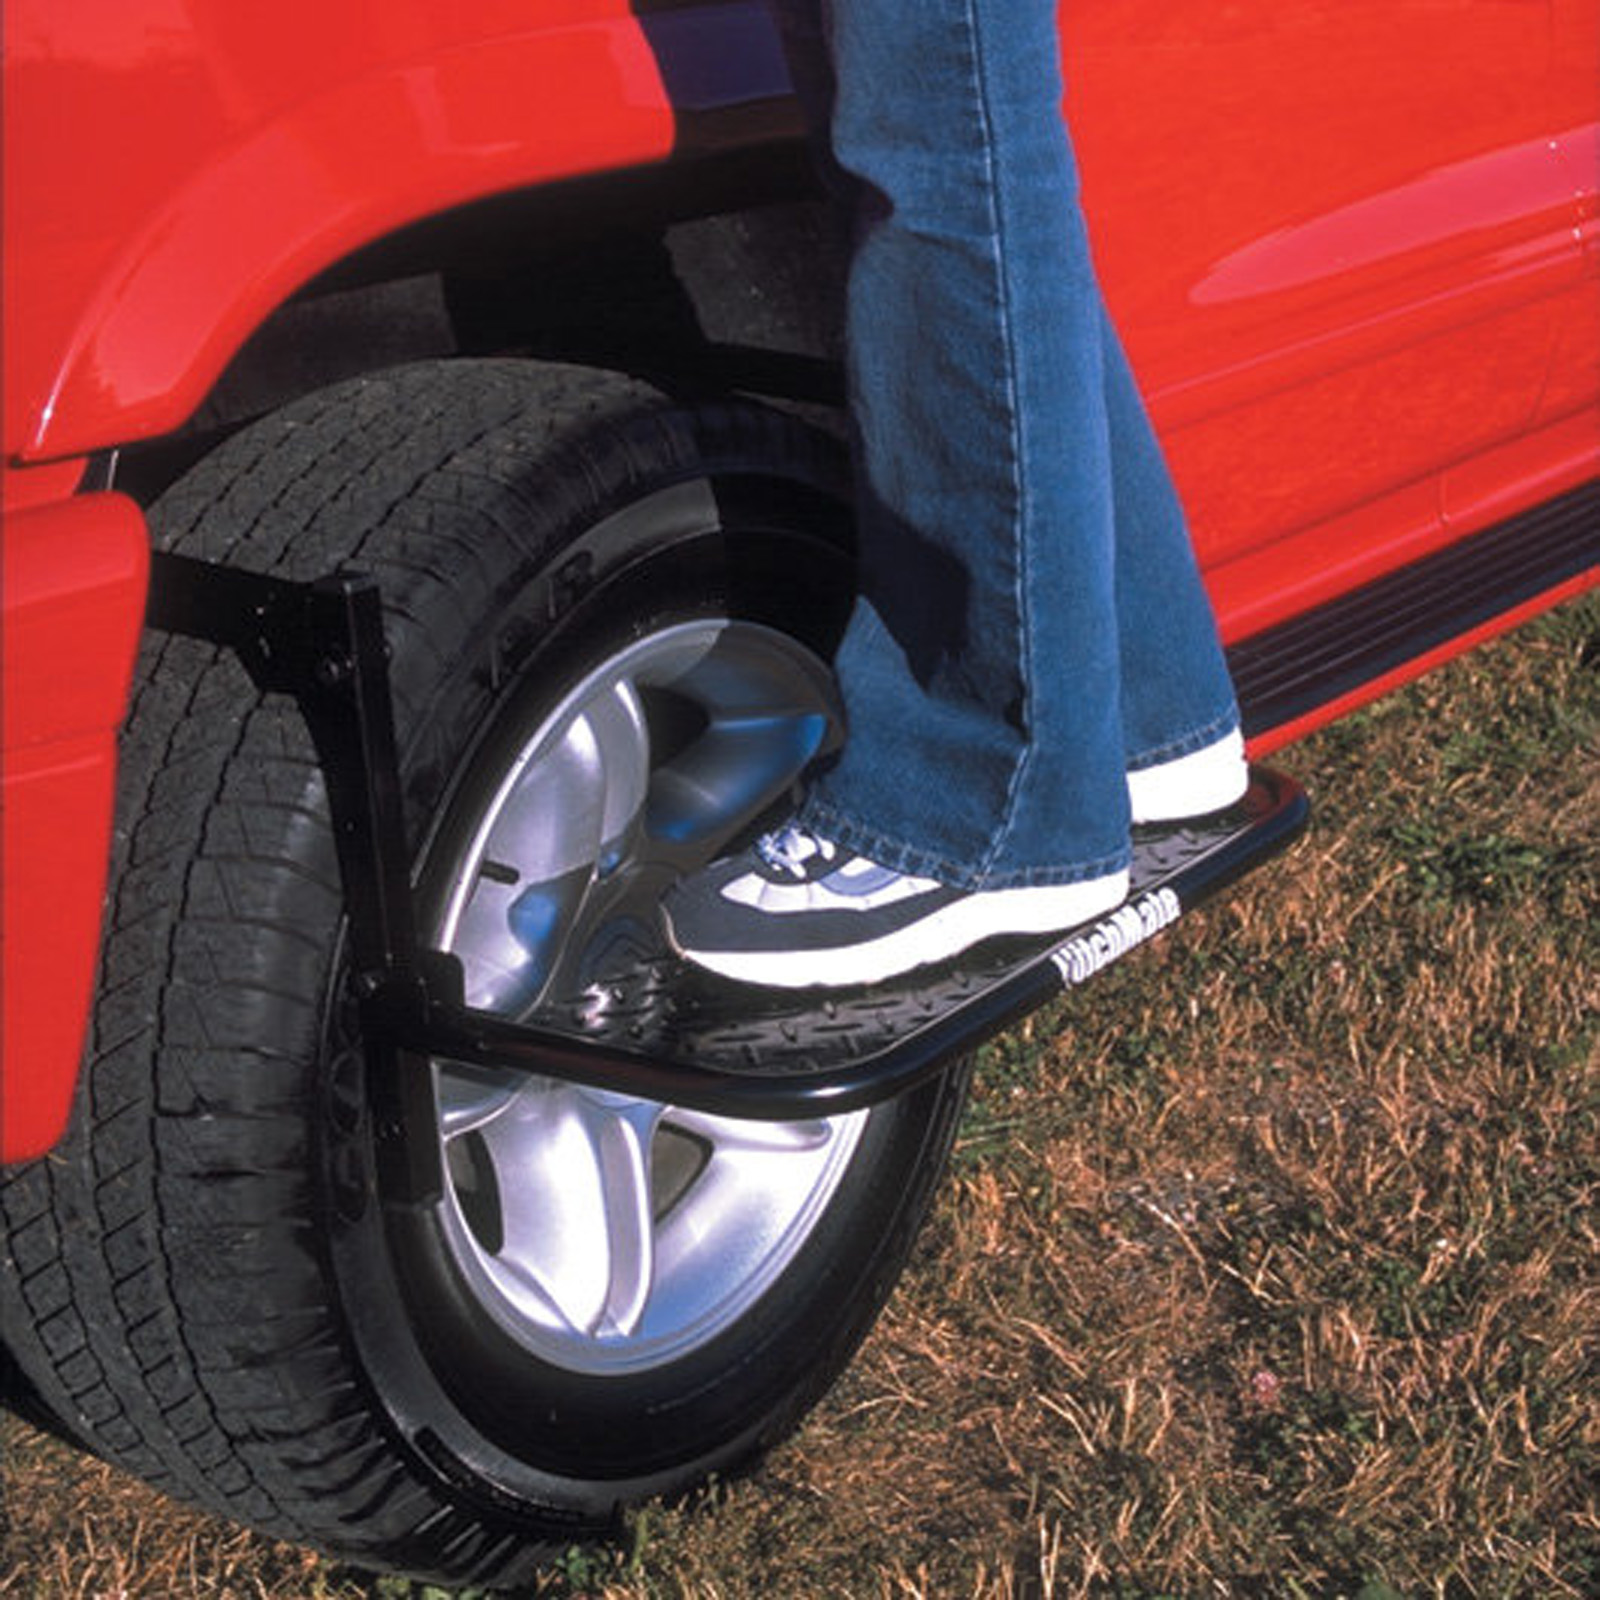 Heininger HitchMate Truck SUV Tire Step Attachment